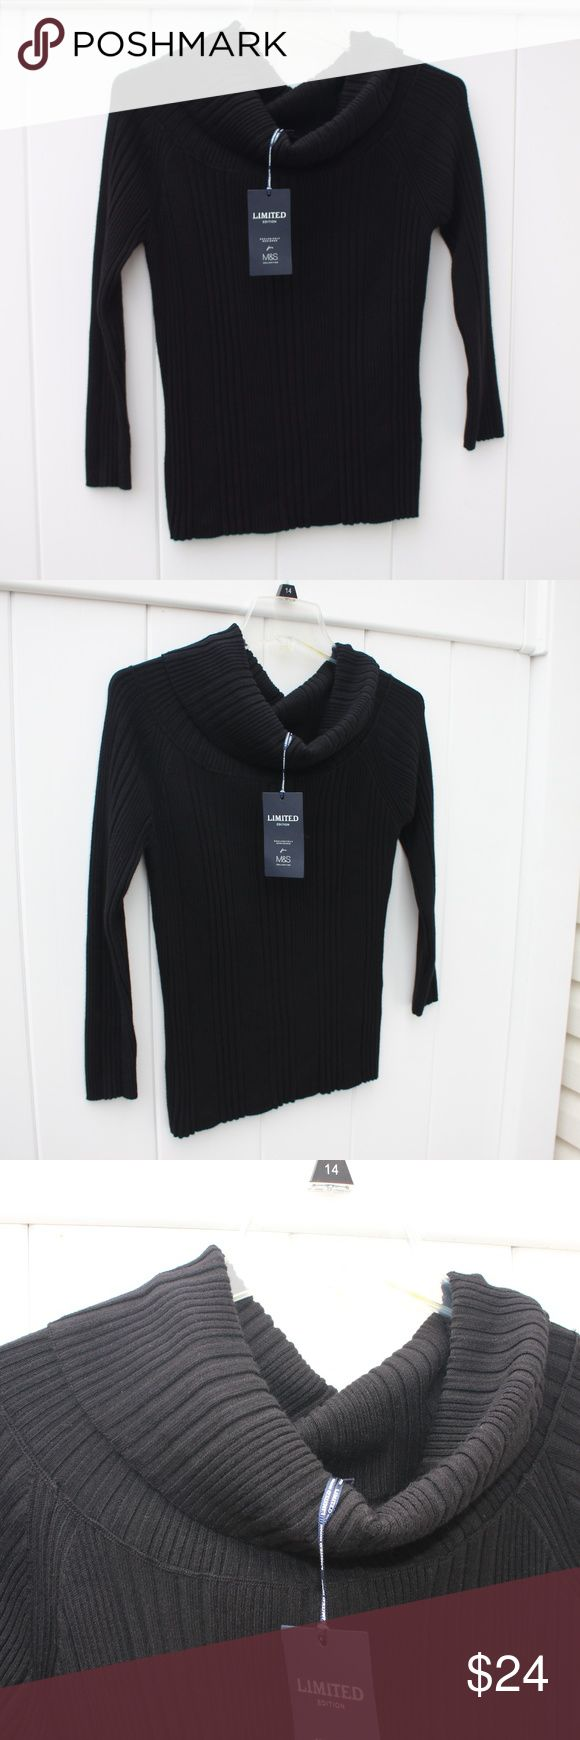 [Marks & Spencer] NWT Black Cowl-Neck Sweater Very soft and comfortable Marks & Spencer (M&S) black cowl-neck turtleneck. Brand new with tags. London designer, this sweater turtleneck was made in Turkey. UK size 16 - I included the sizing chart, a 16 is approx a US 12 or Size Large.  83% Viscose  14% Polyamide 3% Polyester Marks & Spencer Sweaters Cowl & Turtlenecks